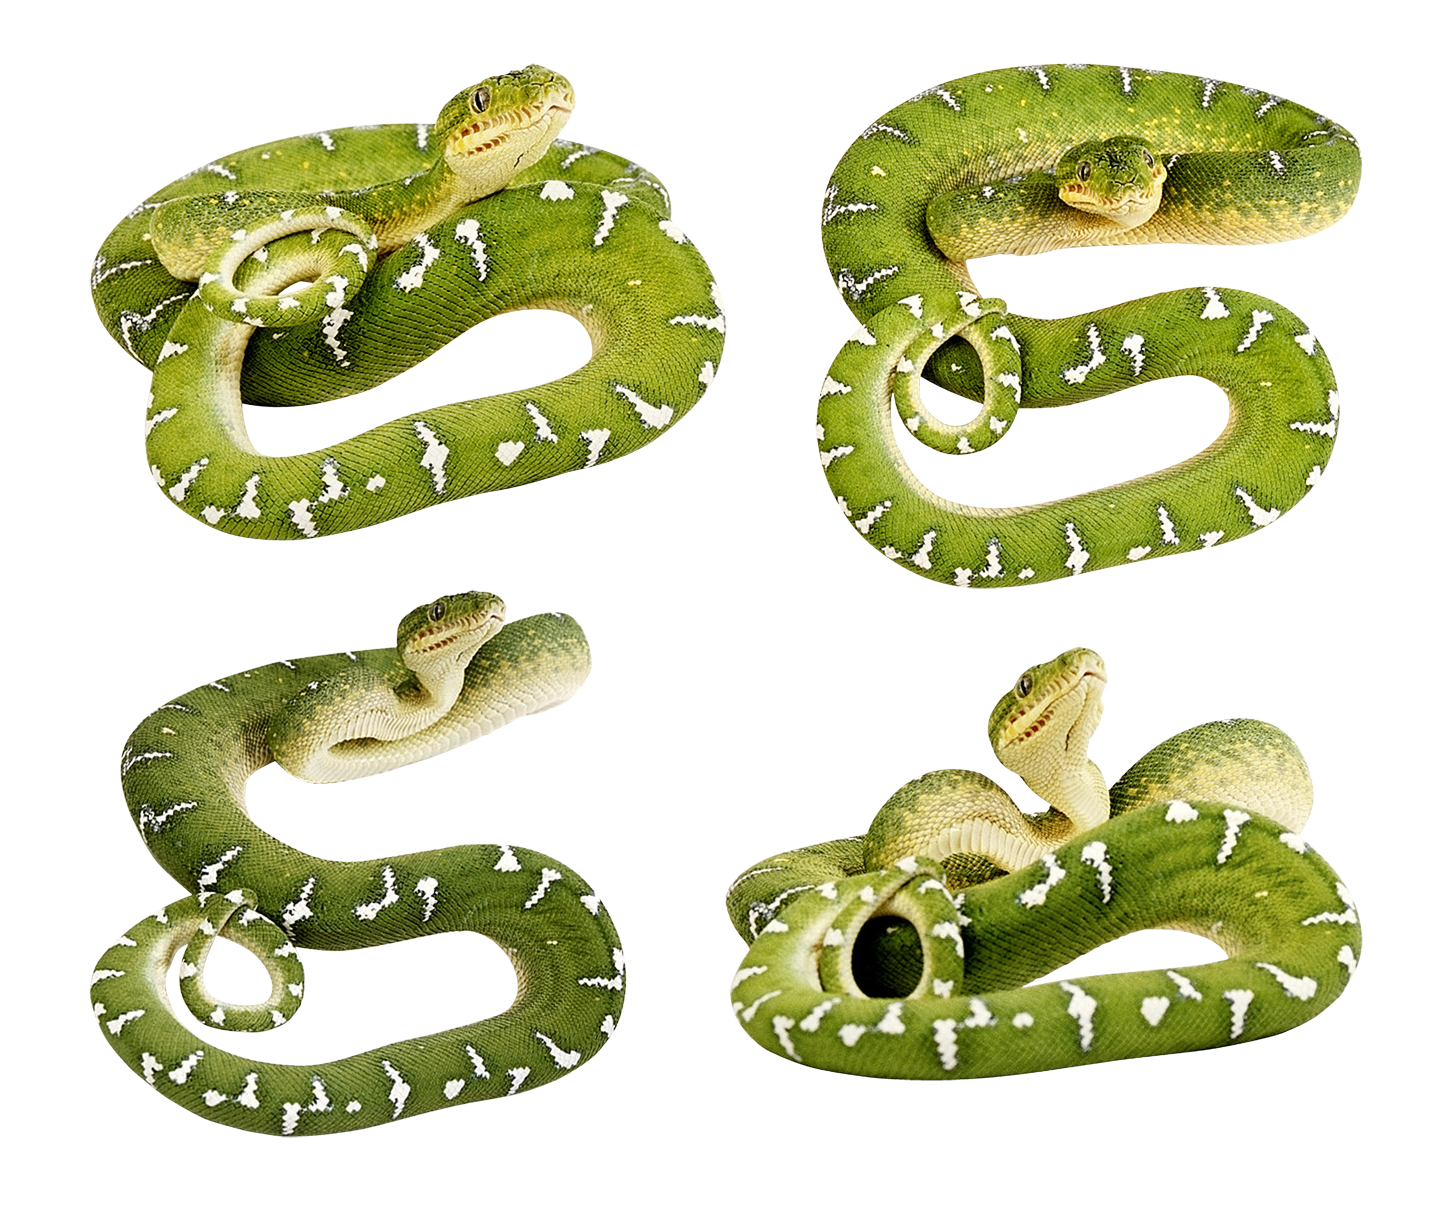 Snake clipart sea snake. Green snakes png image